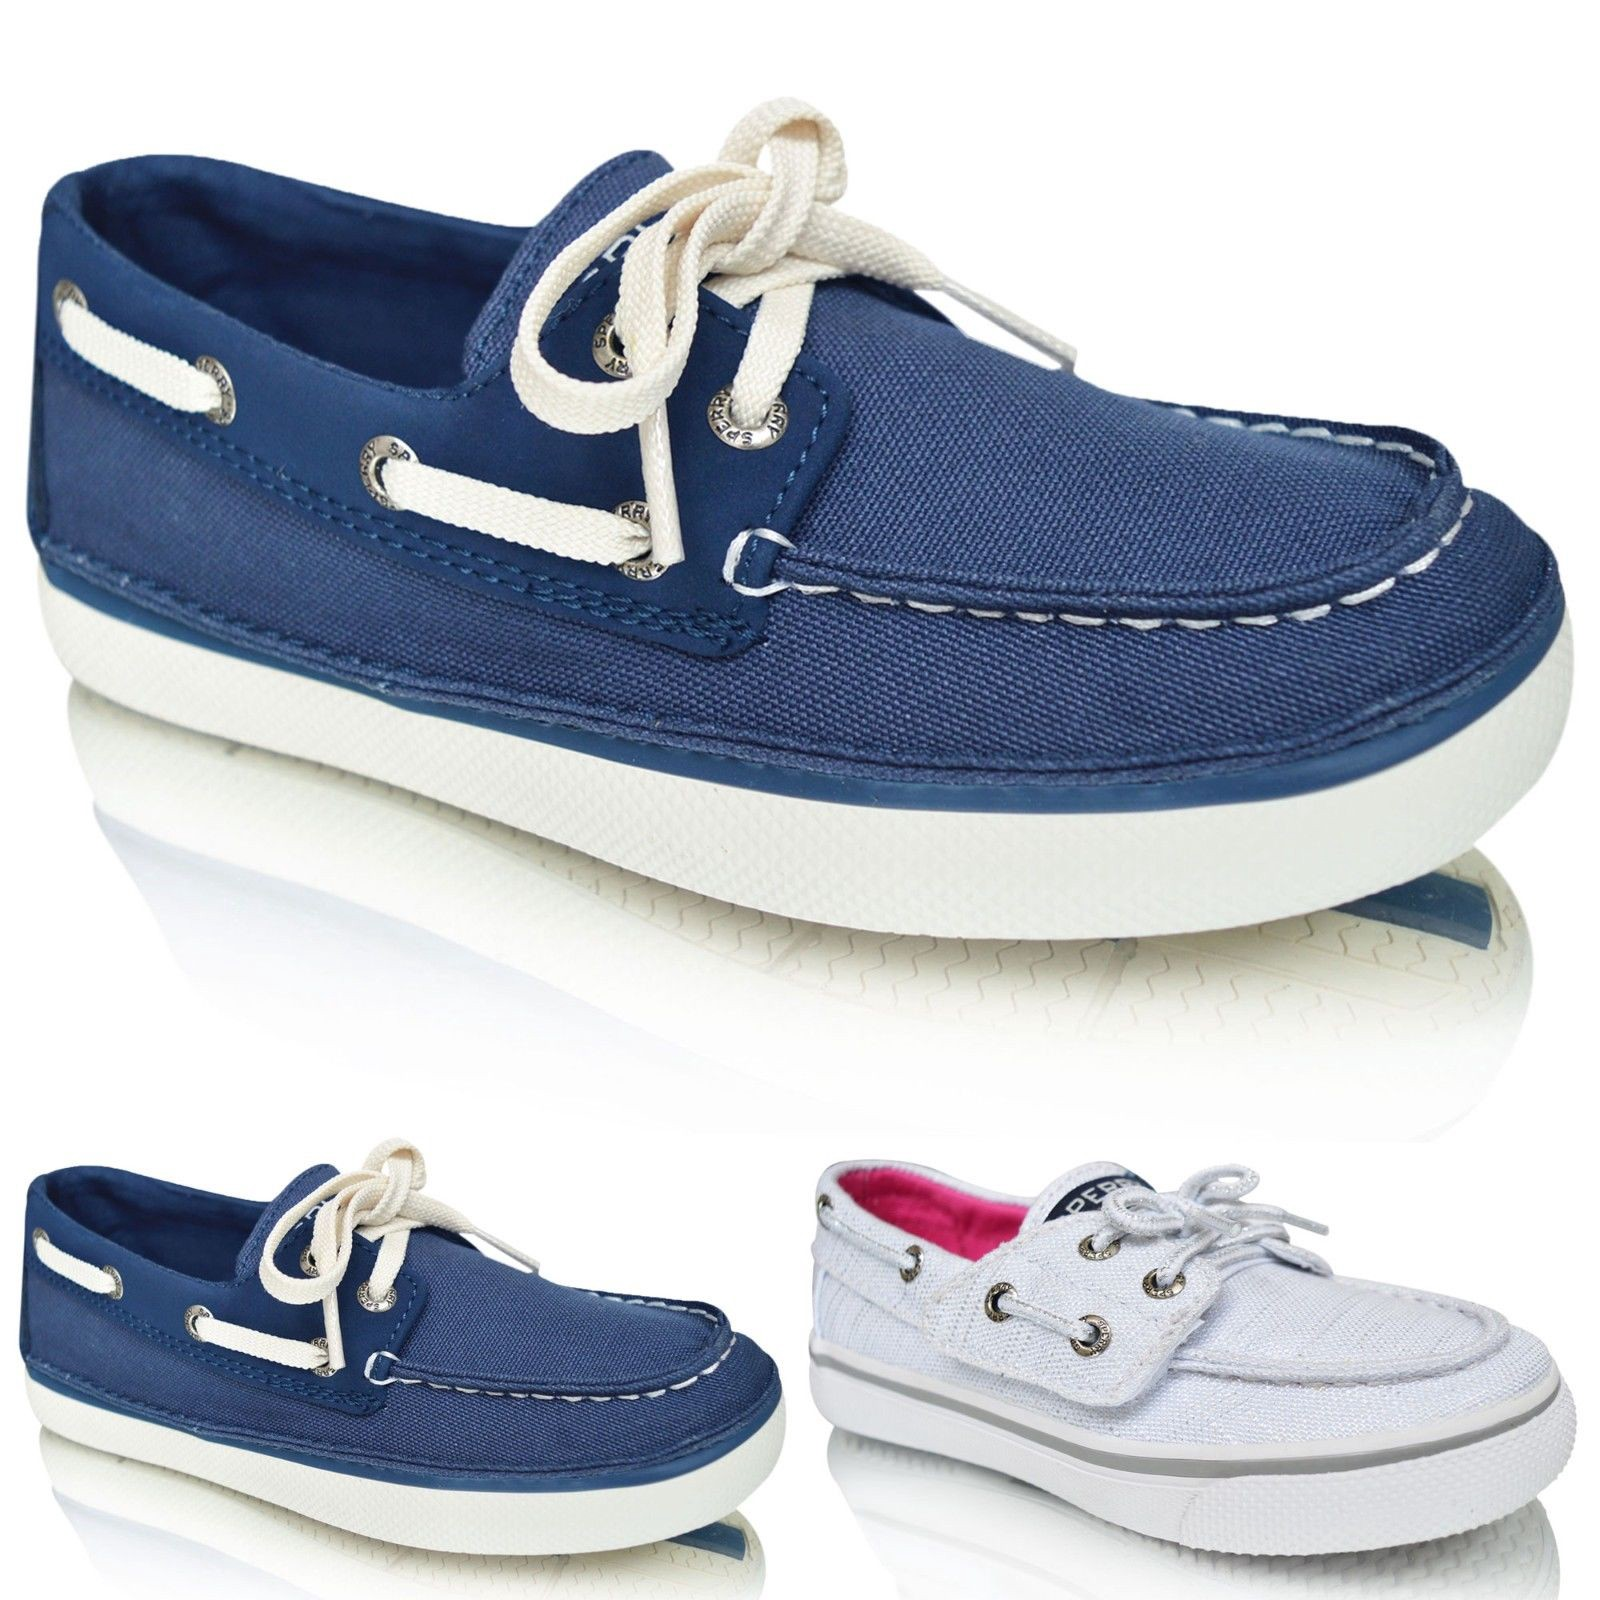 Kids Boys Girls Loafers Casual Sperry